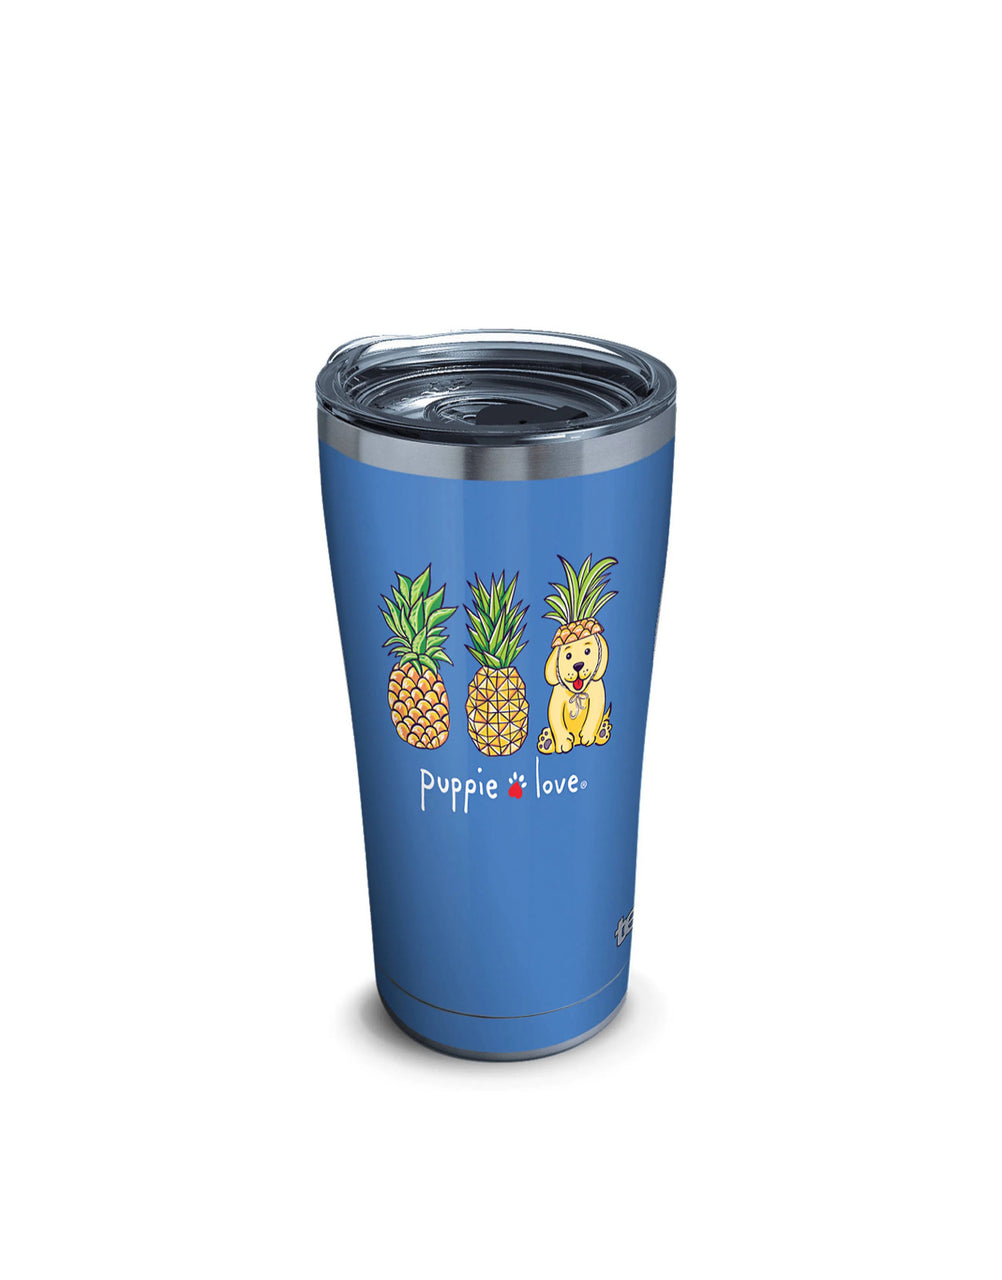 PINEAPPLE DISGUISE 20oz STAINLESS STEEL - Puppie Love